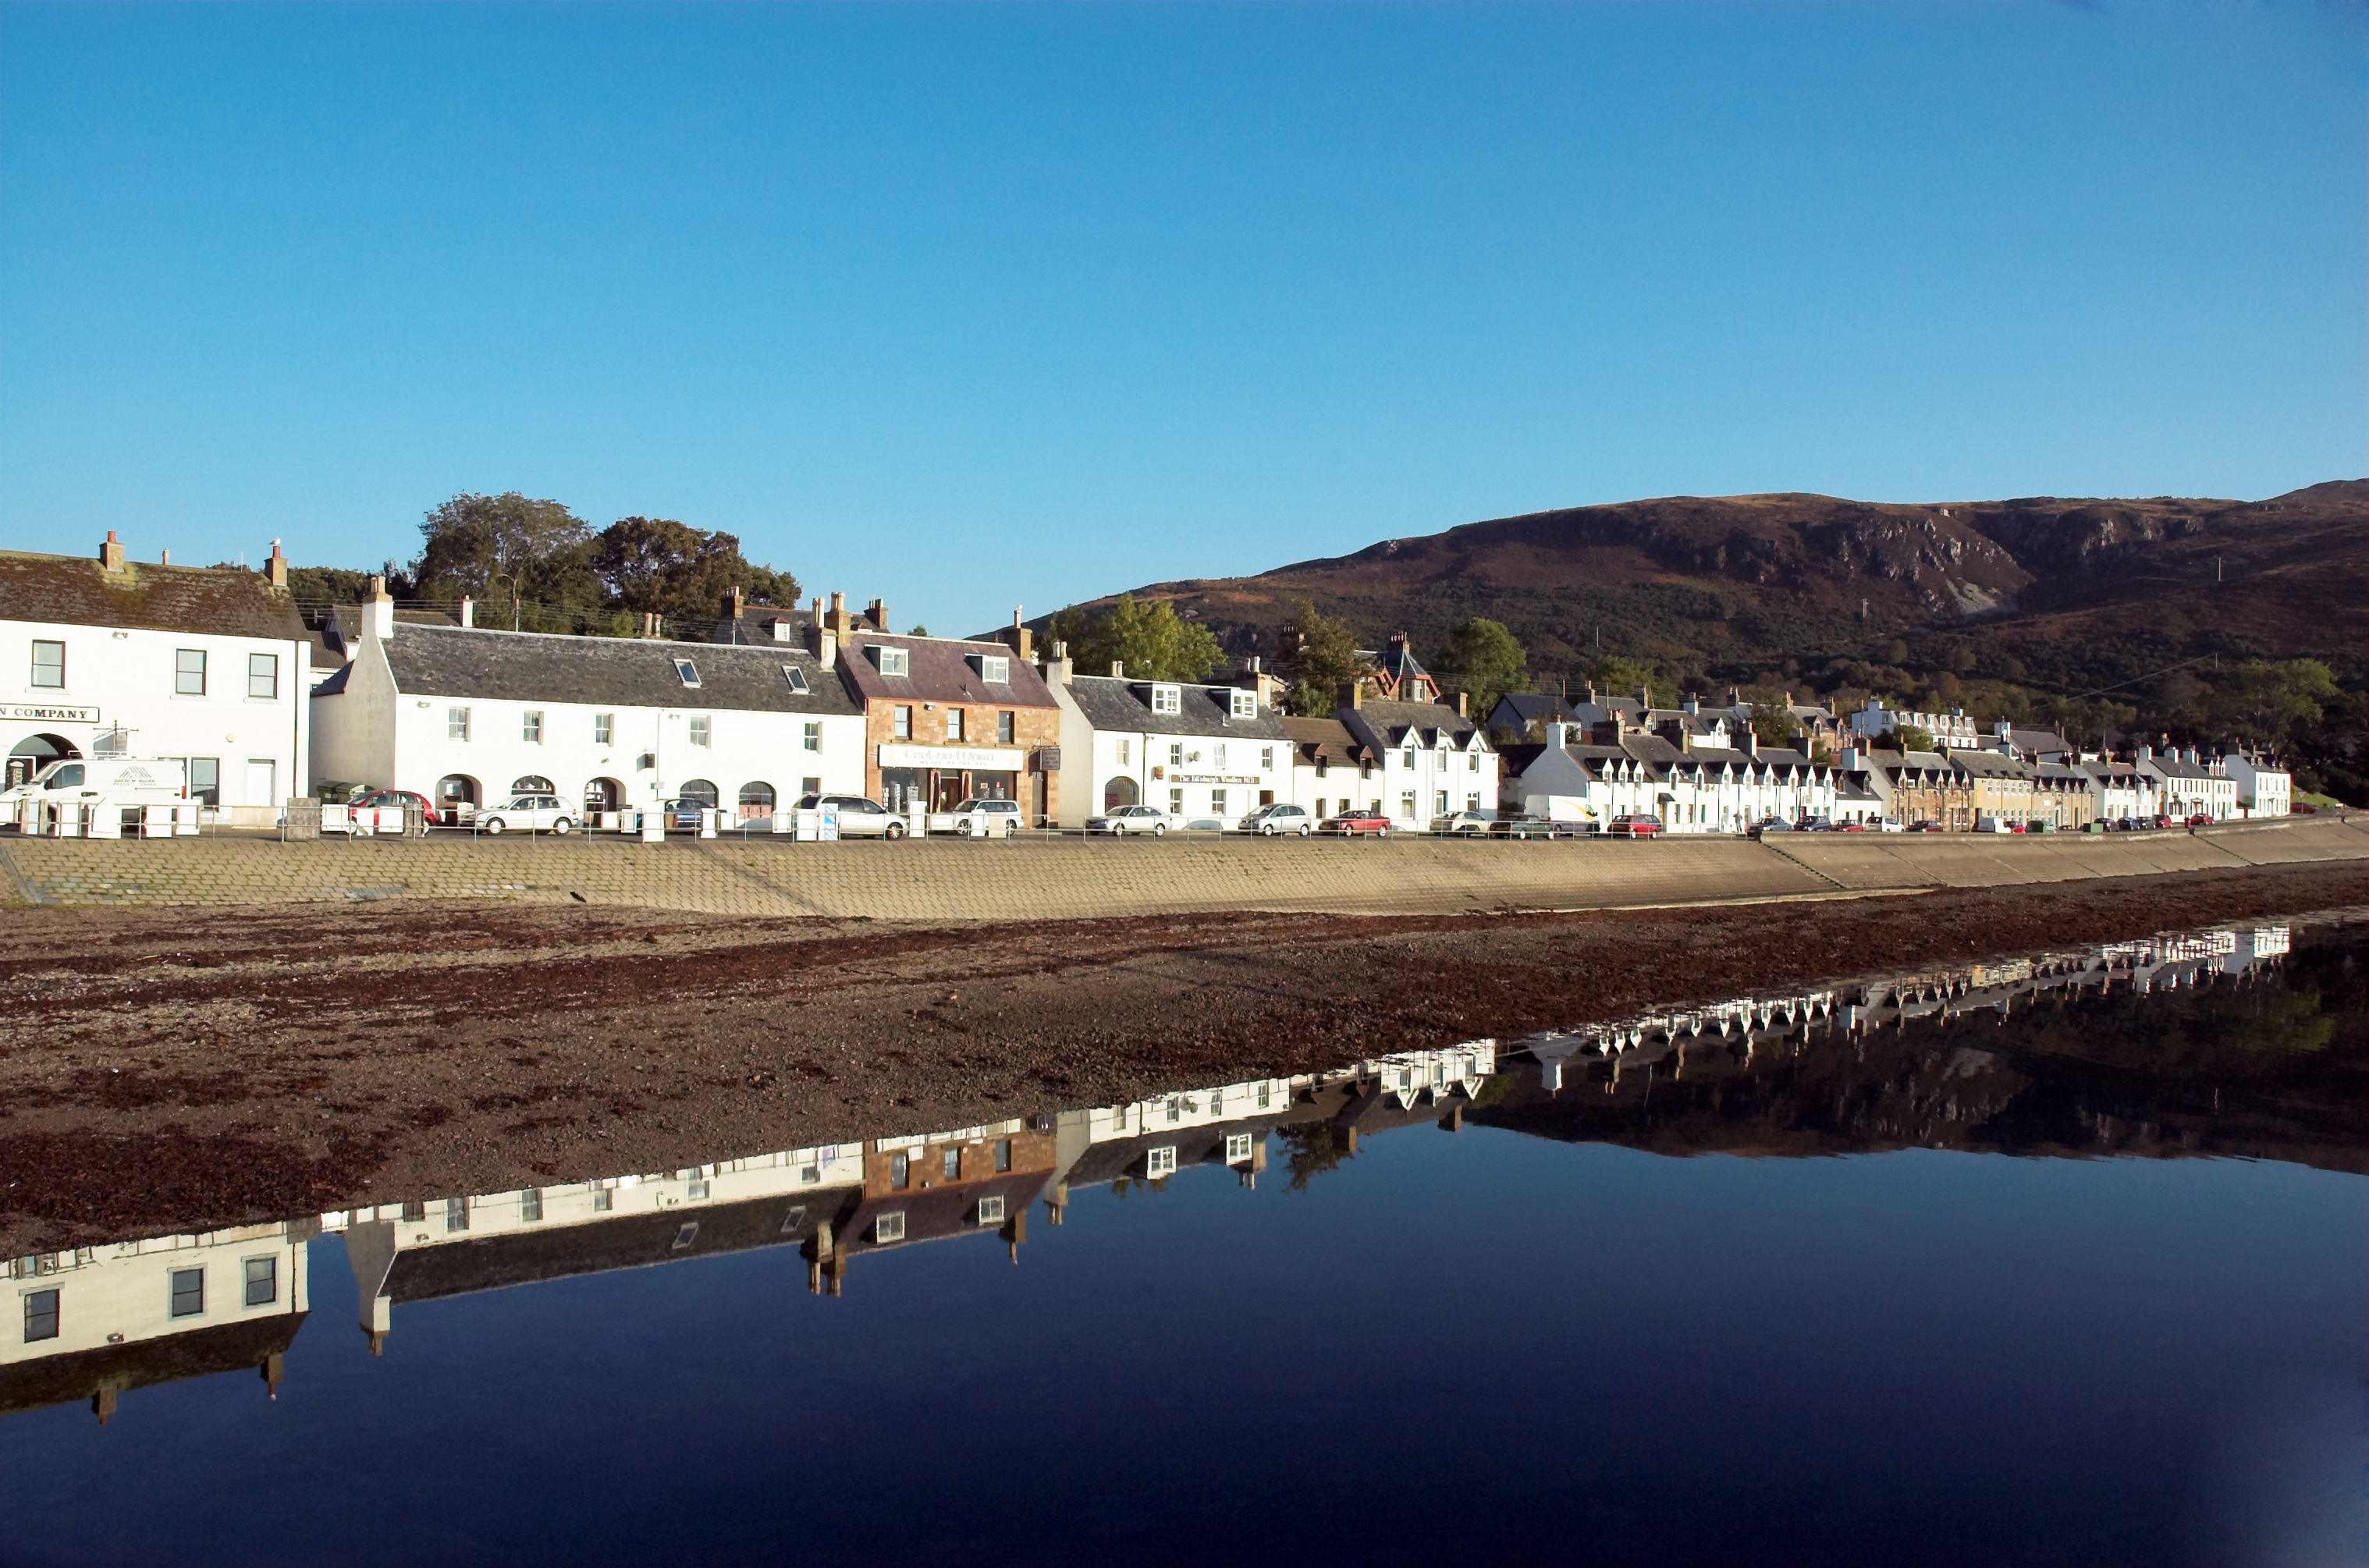 Ullapool United Kingdom  City pictures : Ullapool romps in the Belmont feature Worldnews.com